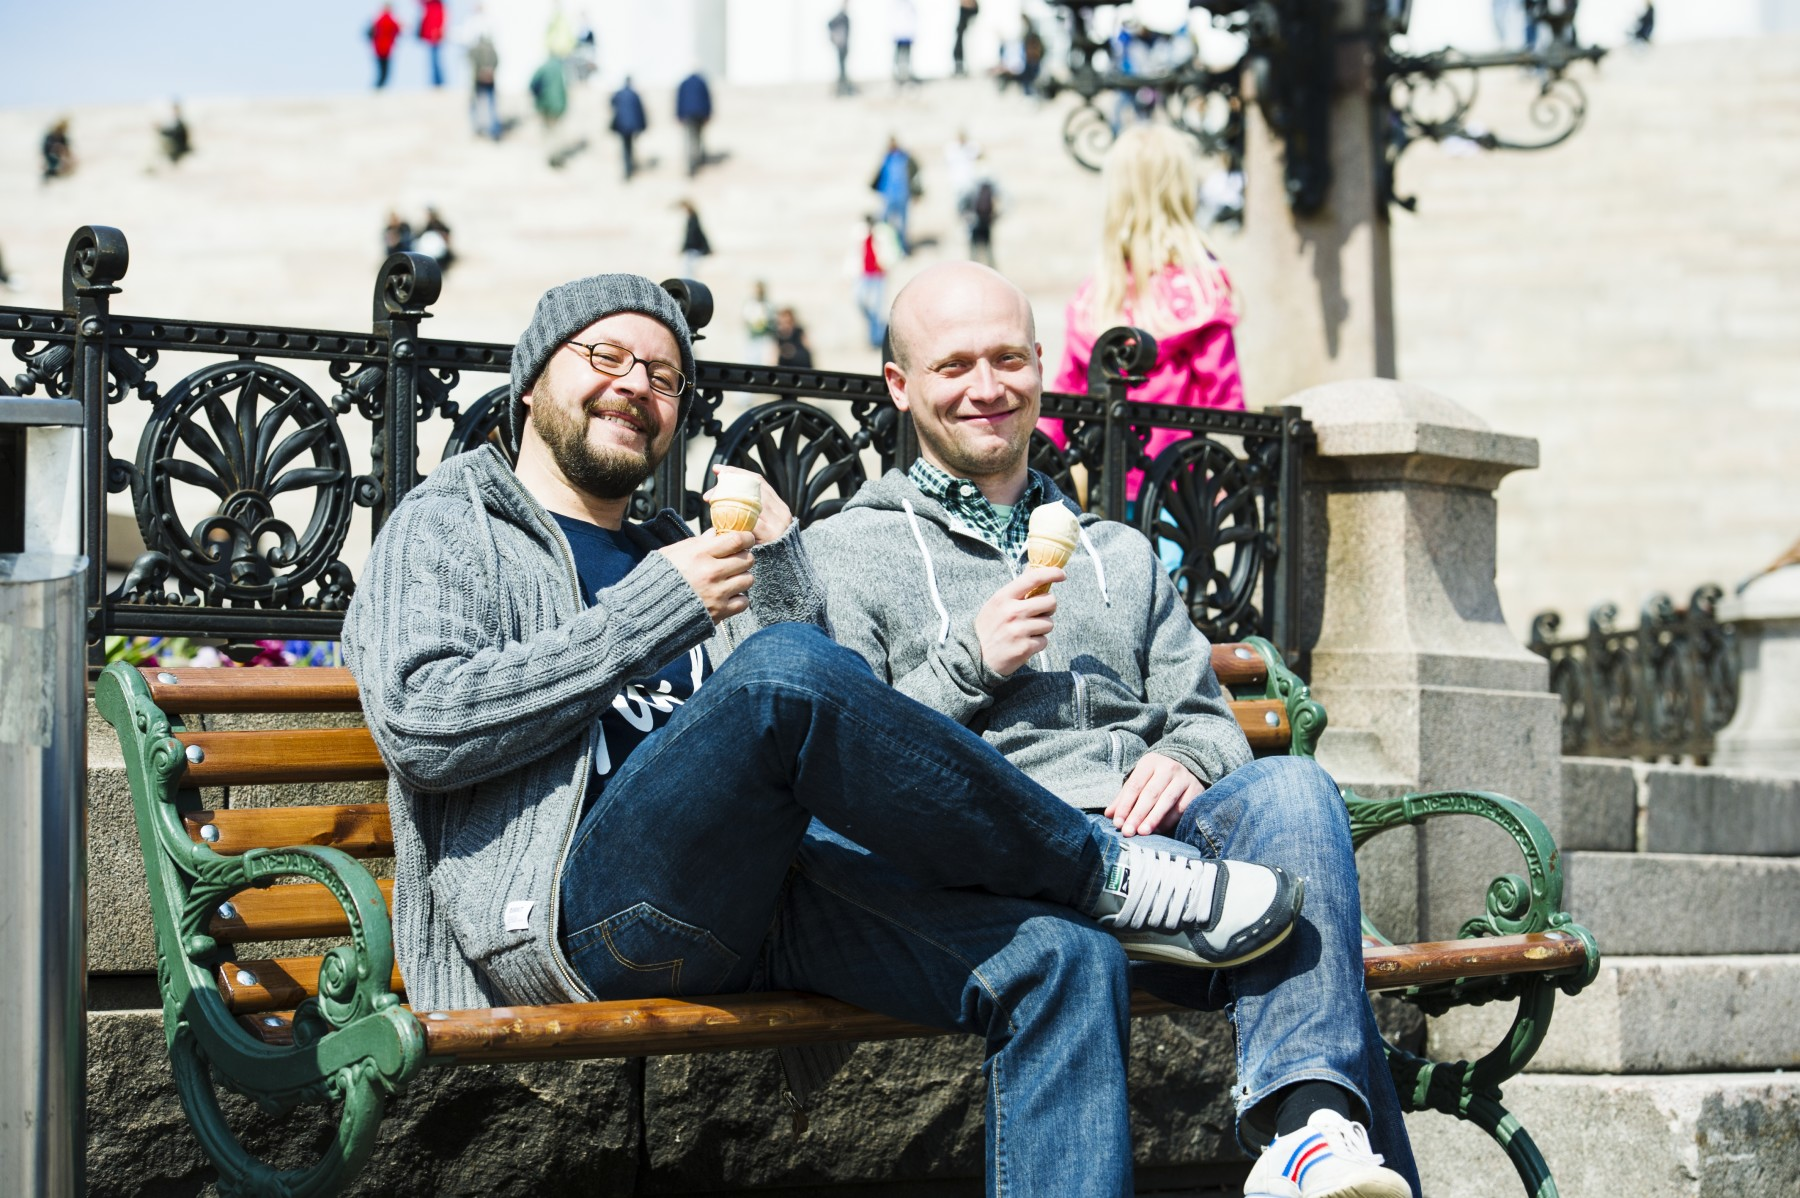 Two men sitting on a bench eating ice cream.